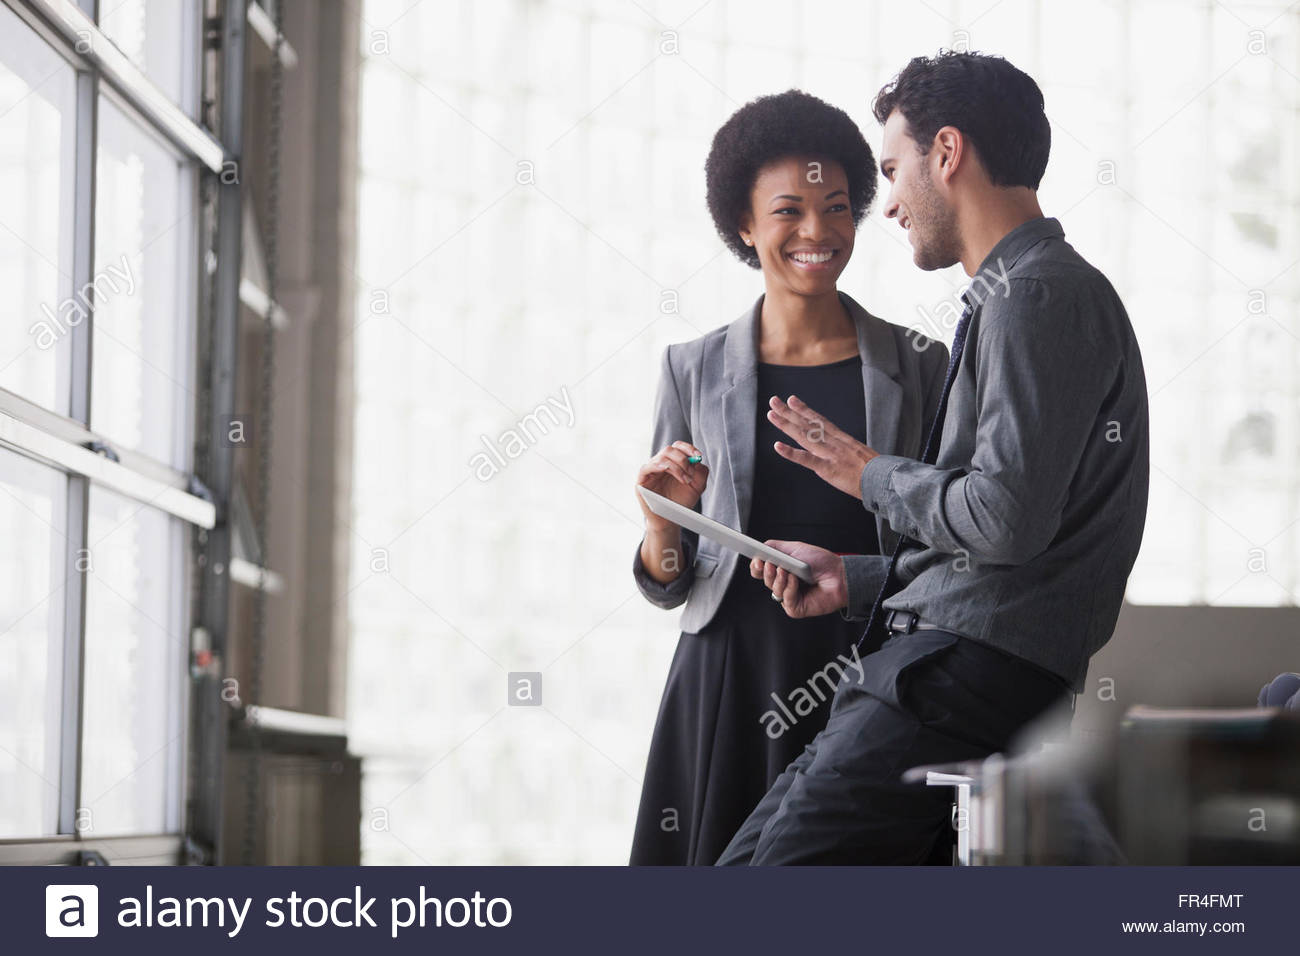 businessman holding tablet as he talks to female coworker - Stock Image